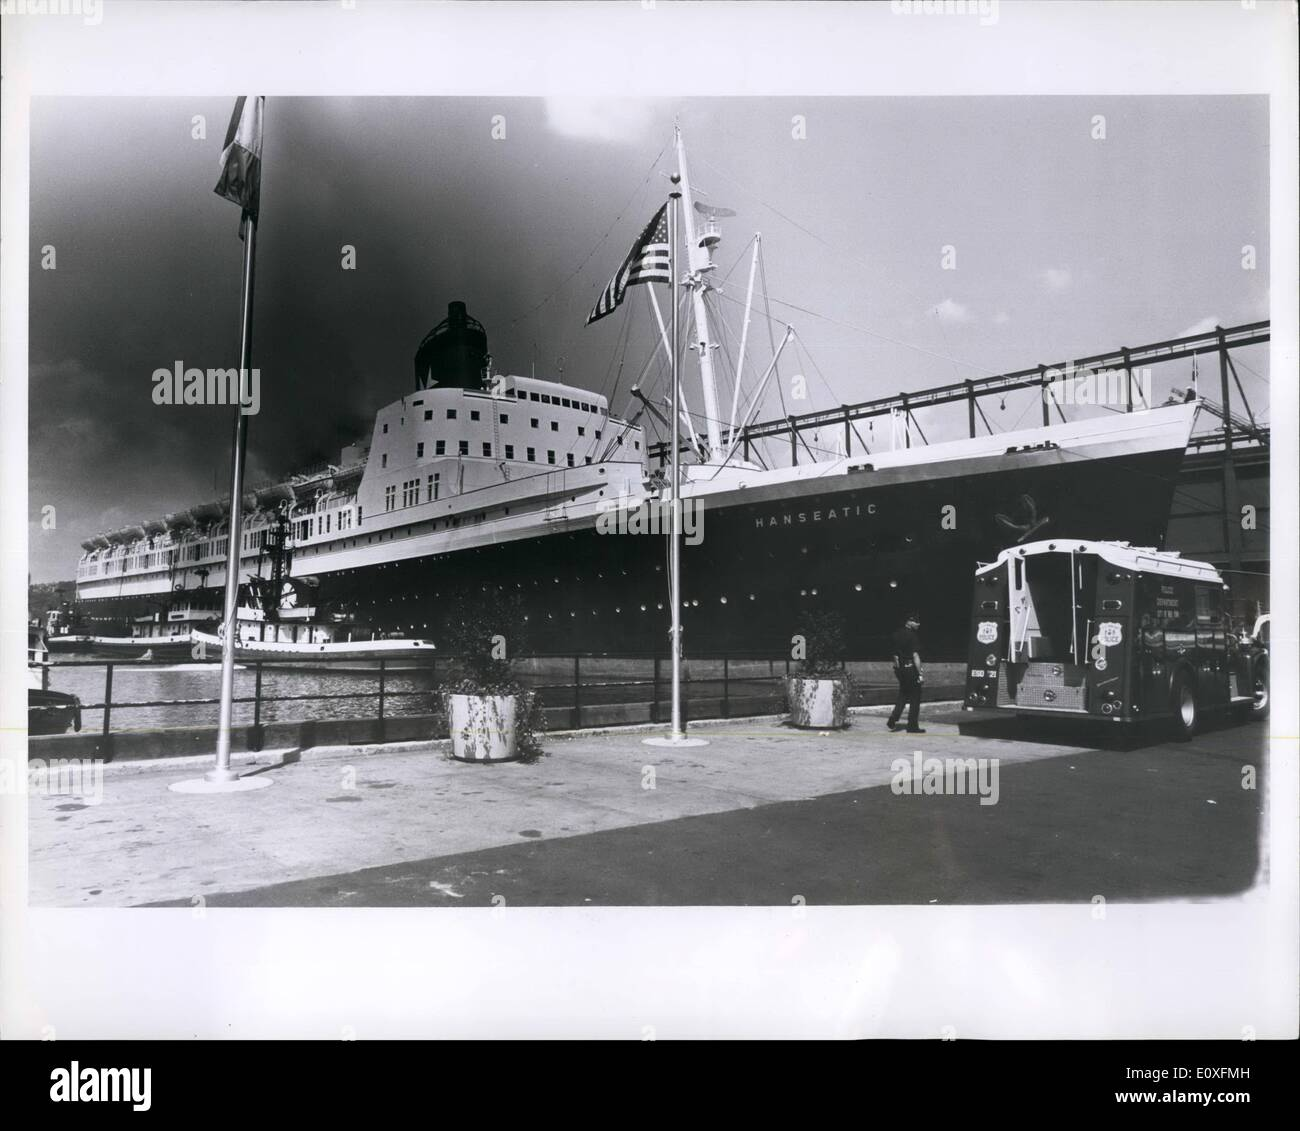 Sep. 09, 1966 - 30,000 ton German liner Hanseatic in five alarm fire at New York Hudson River Pier: Leaking diesel fuel caused fire injuring 7 firemen and causing great damage to vessel owned by Atlantik Line & Co. of Hamburg. It took 300 firemen and 50 apparatus to get control after 7 hours. Three city fire boats, several police helicopters and two Coast Guard vessels came to help but were not used. All the action was below deck. Foam was used extensively rather than water to avoid capsizing of the boat. There were only few passengers on board, were quickly evacuated, none injured - Stock Image